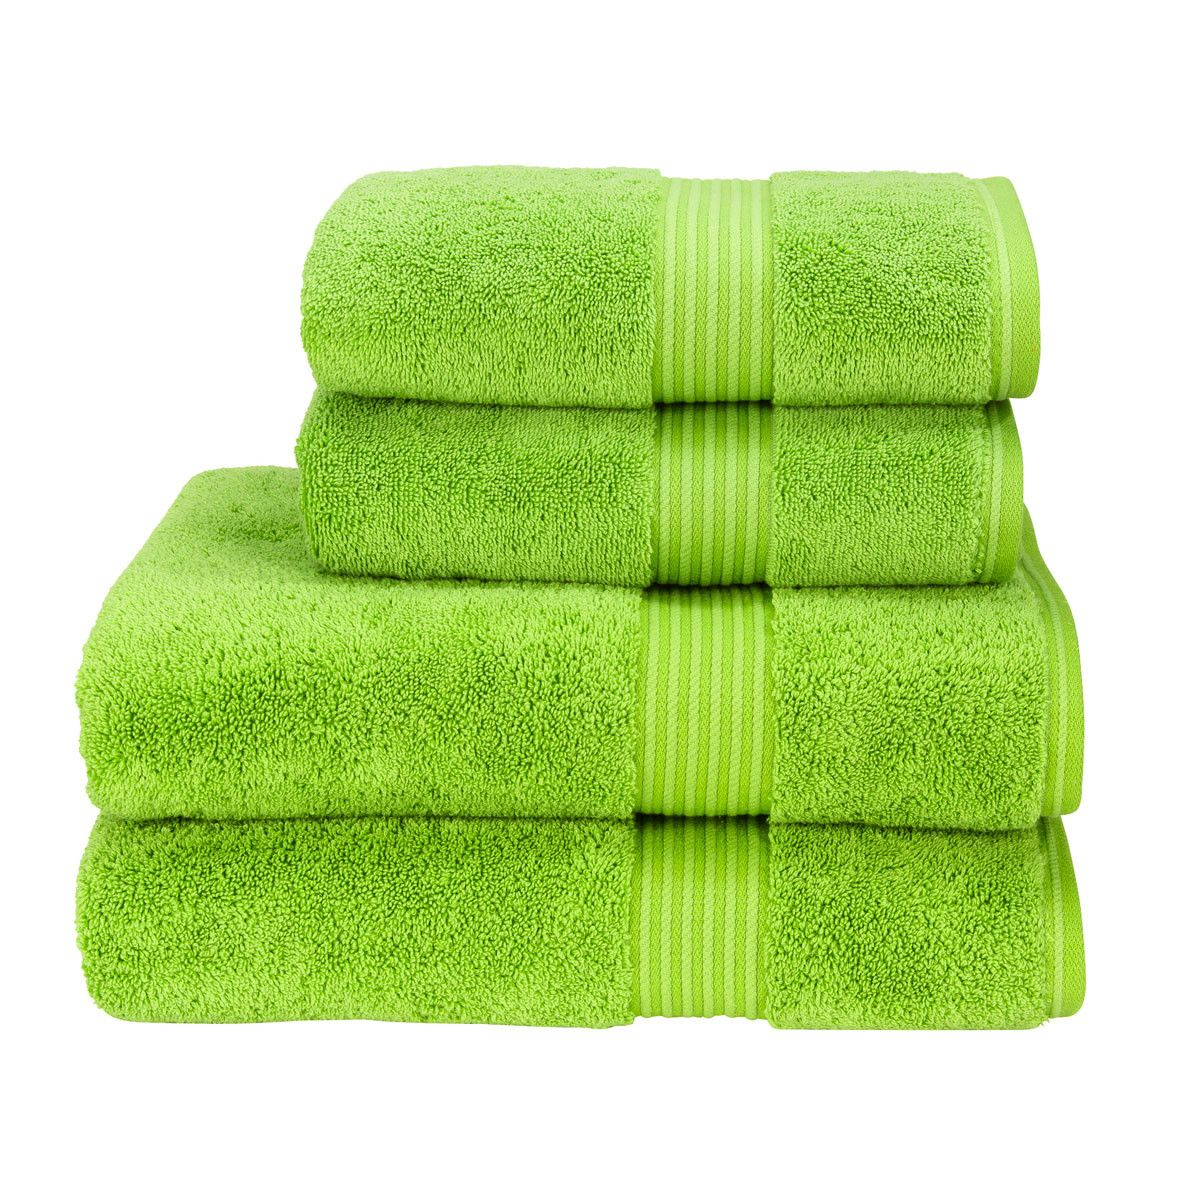 BRIGHT LEMON YELLOW 550GSM 100/% EGYPTIAN COTTON CHOICE OF 3 SIZE TOWEL BALE SETS